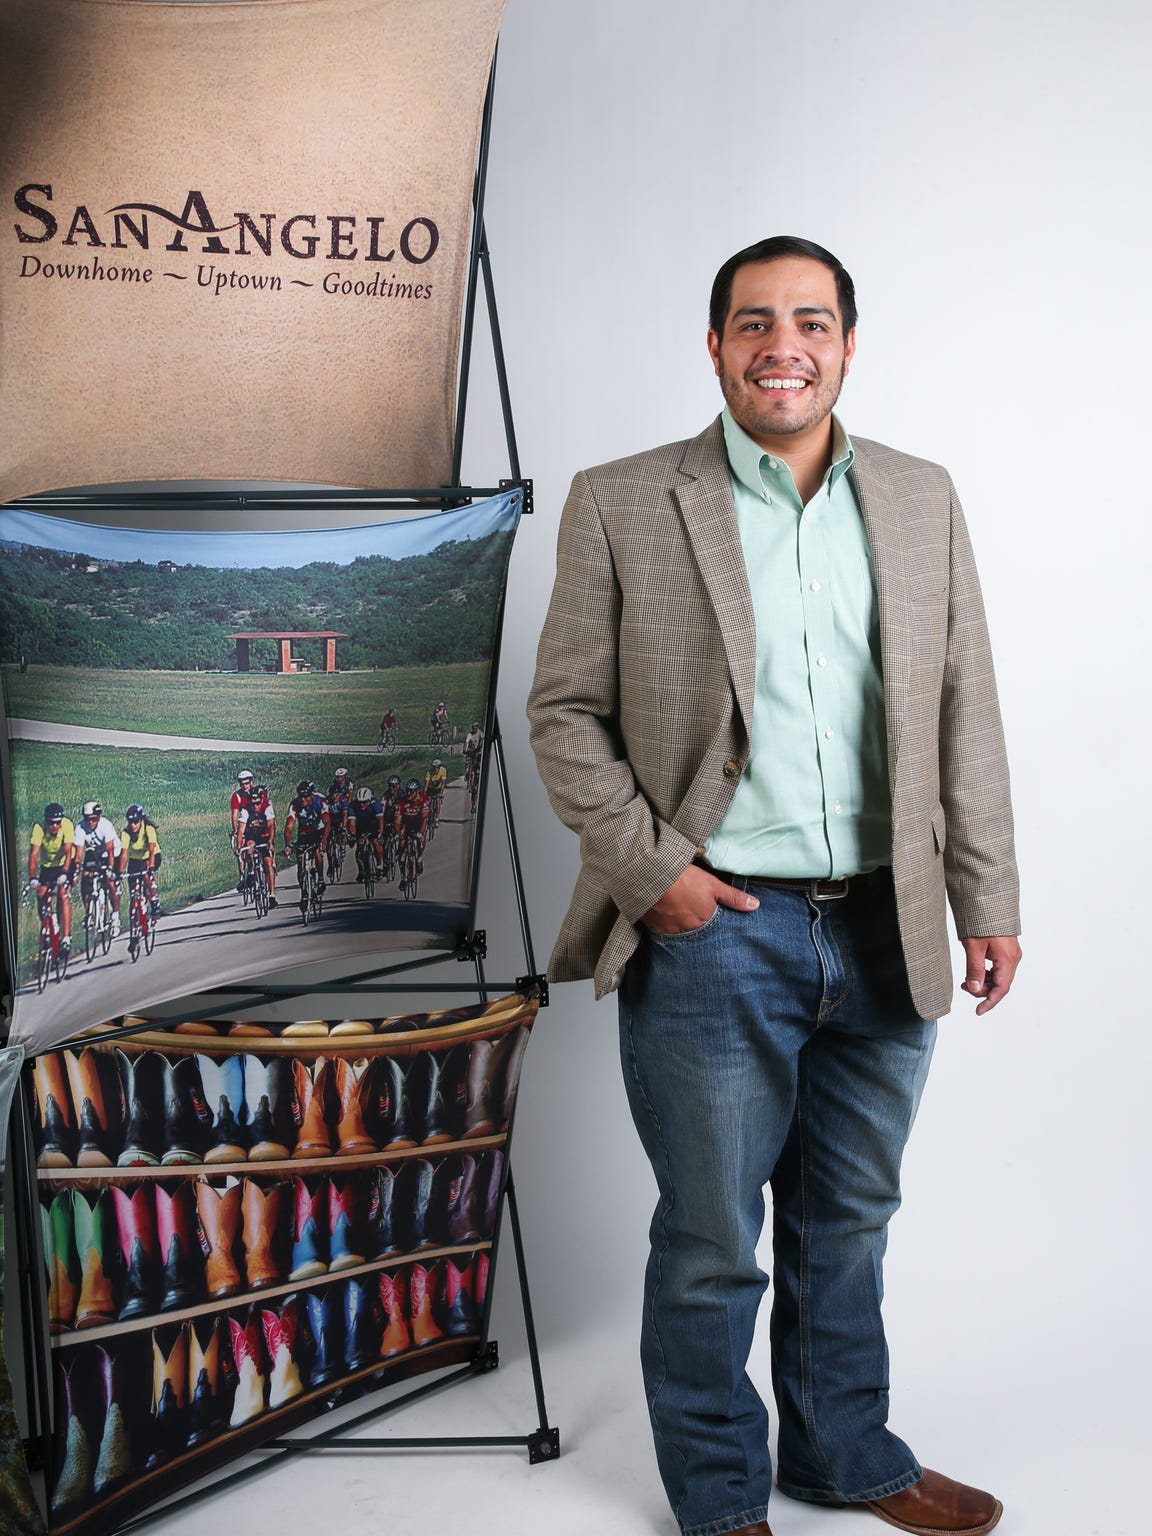 Aaron Padilla, Vice President of Commercial at The